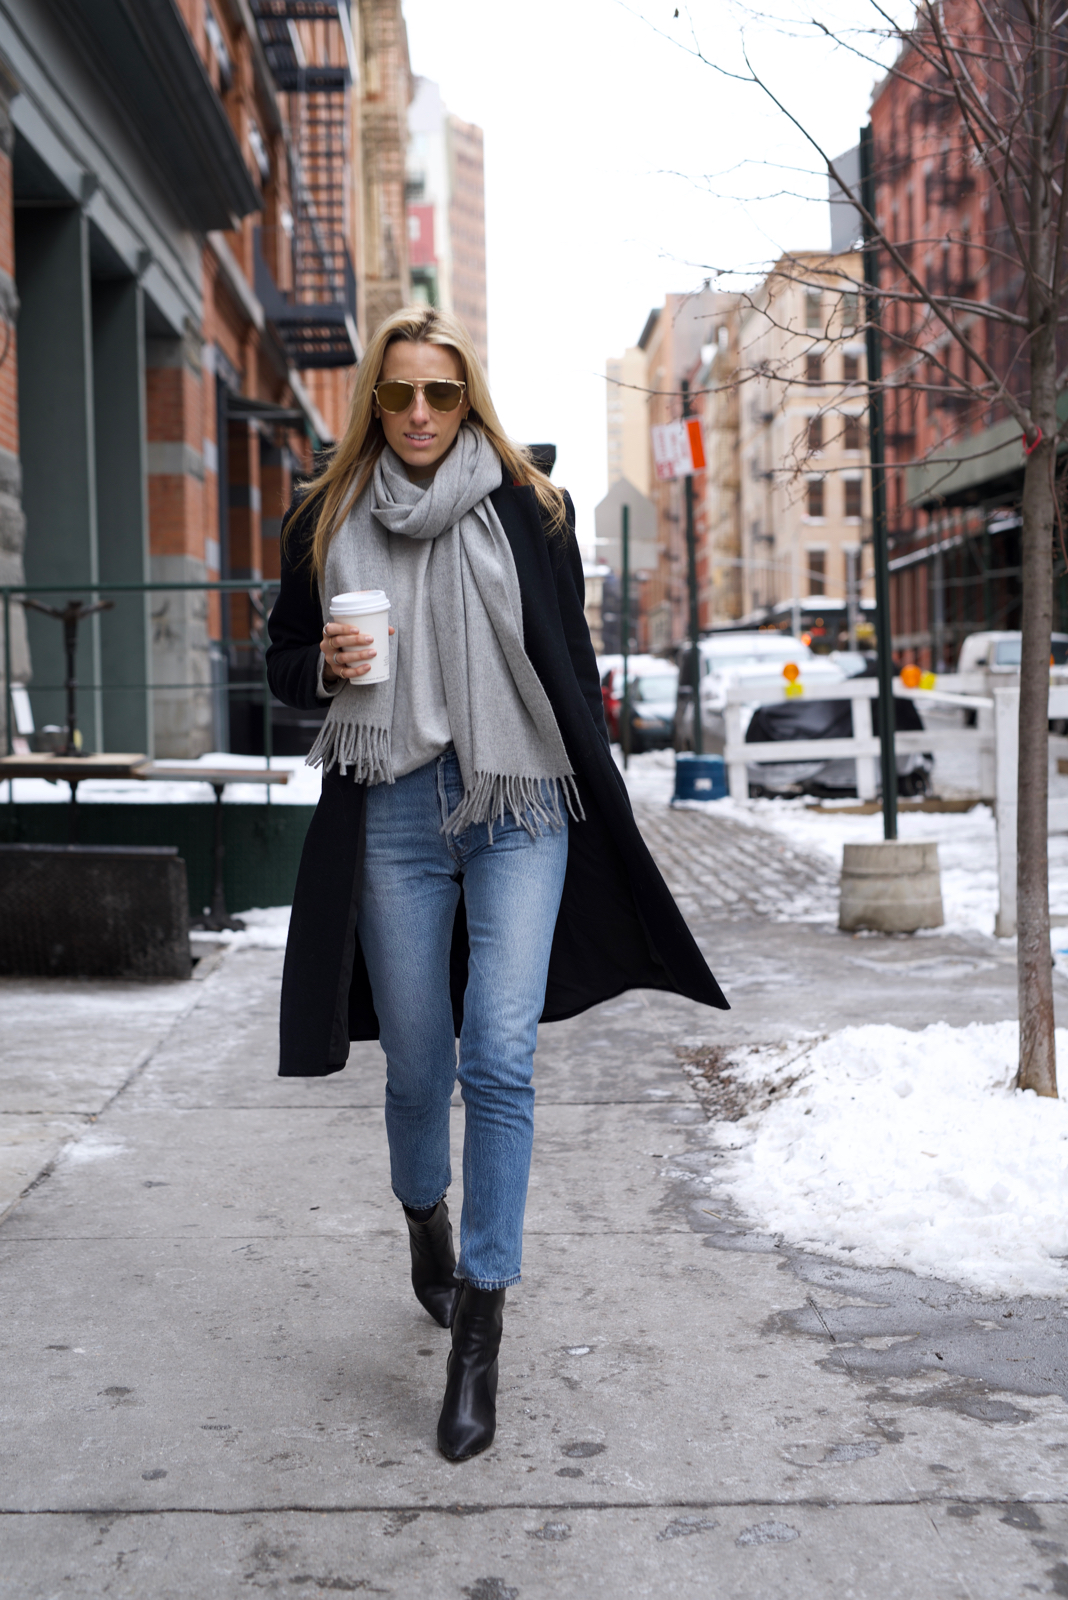 Acne Studios grey Scarf, Coffeenclothes, RE/Done Jeans